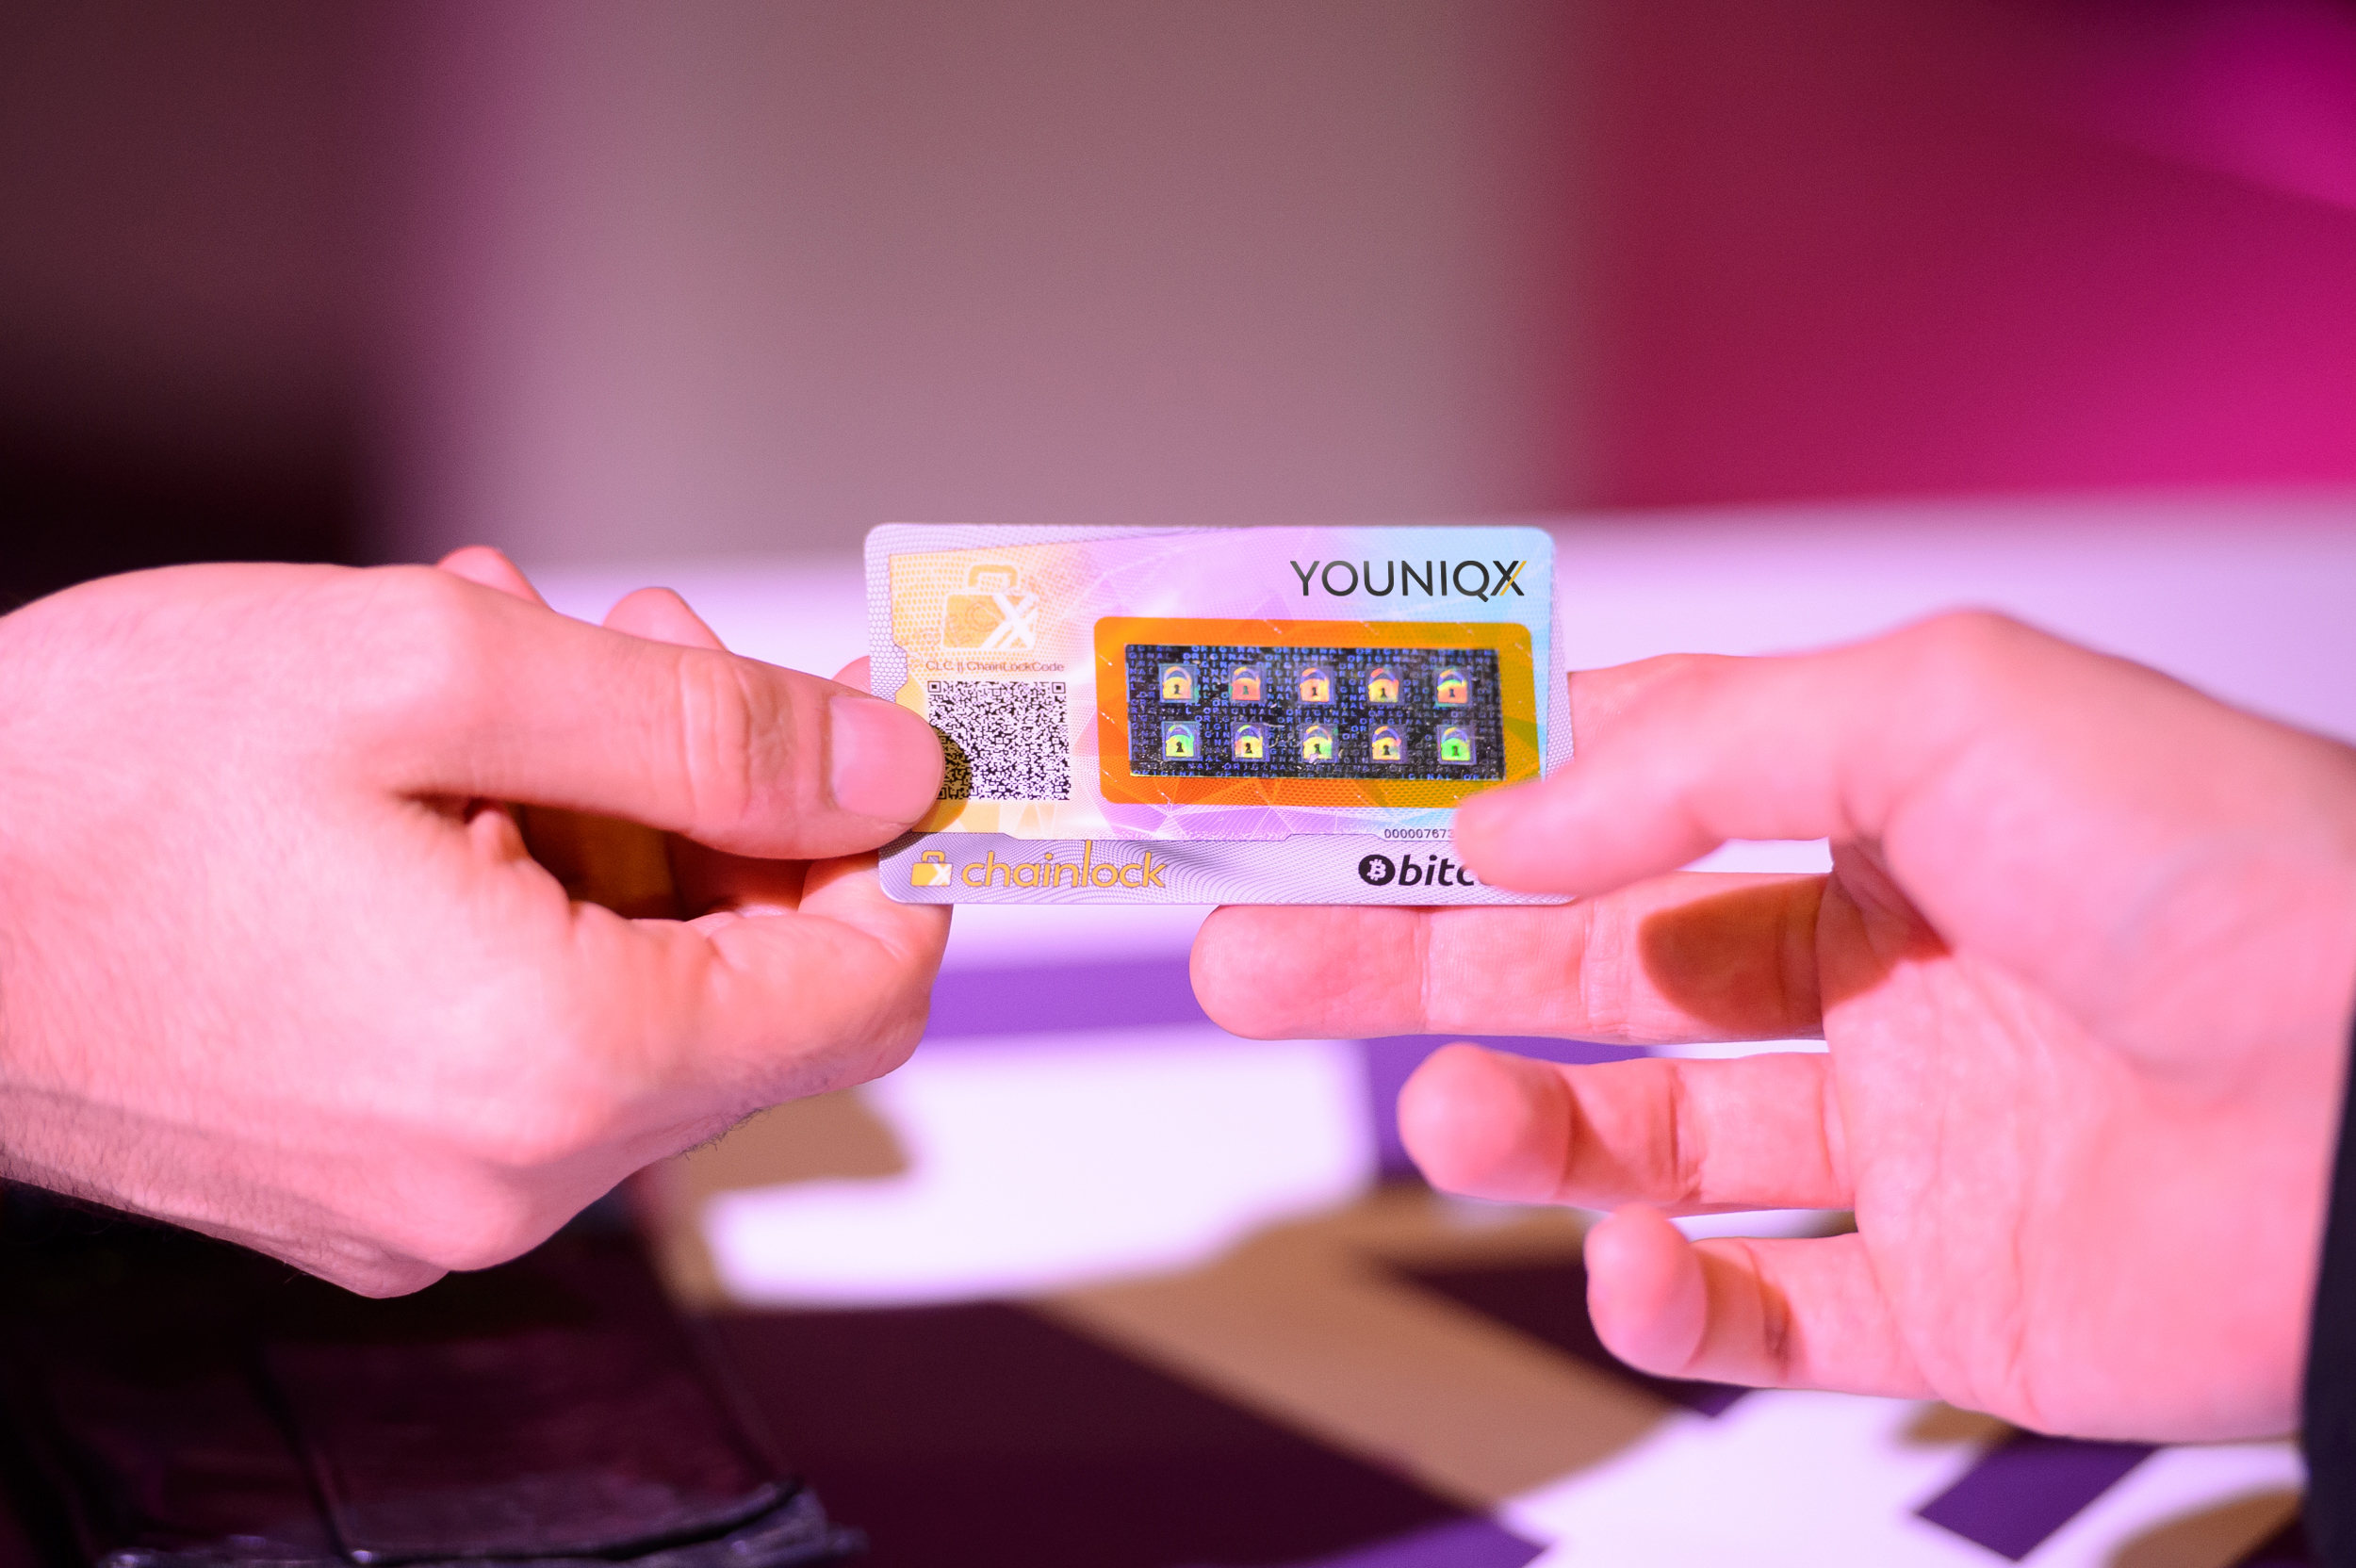 YOUNIQX Chainlock: This 200-year-old security firm wants to protect your Bitcoin